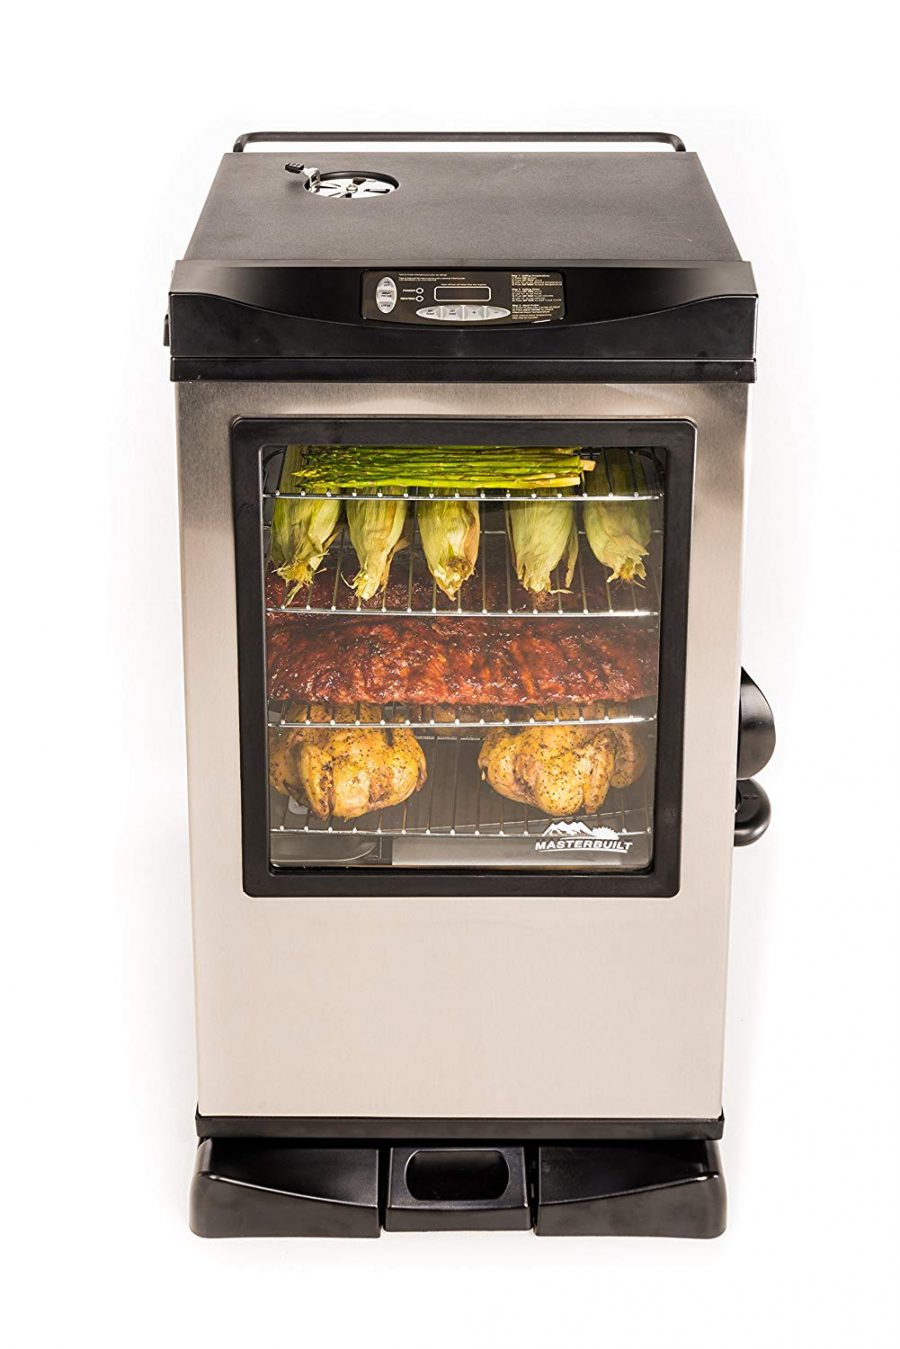 18 Masterbuilt Electric Smoker with Window and RF Controller